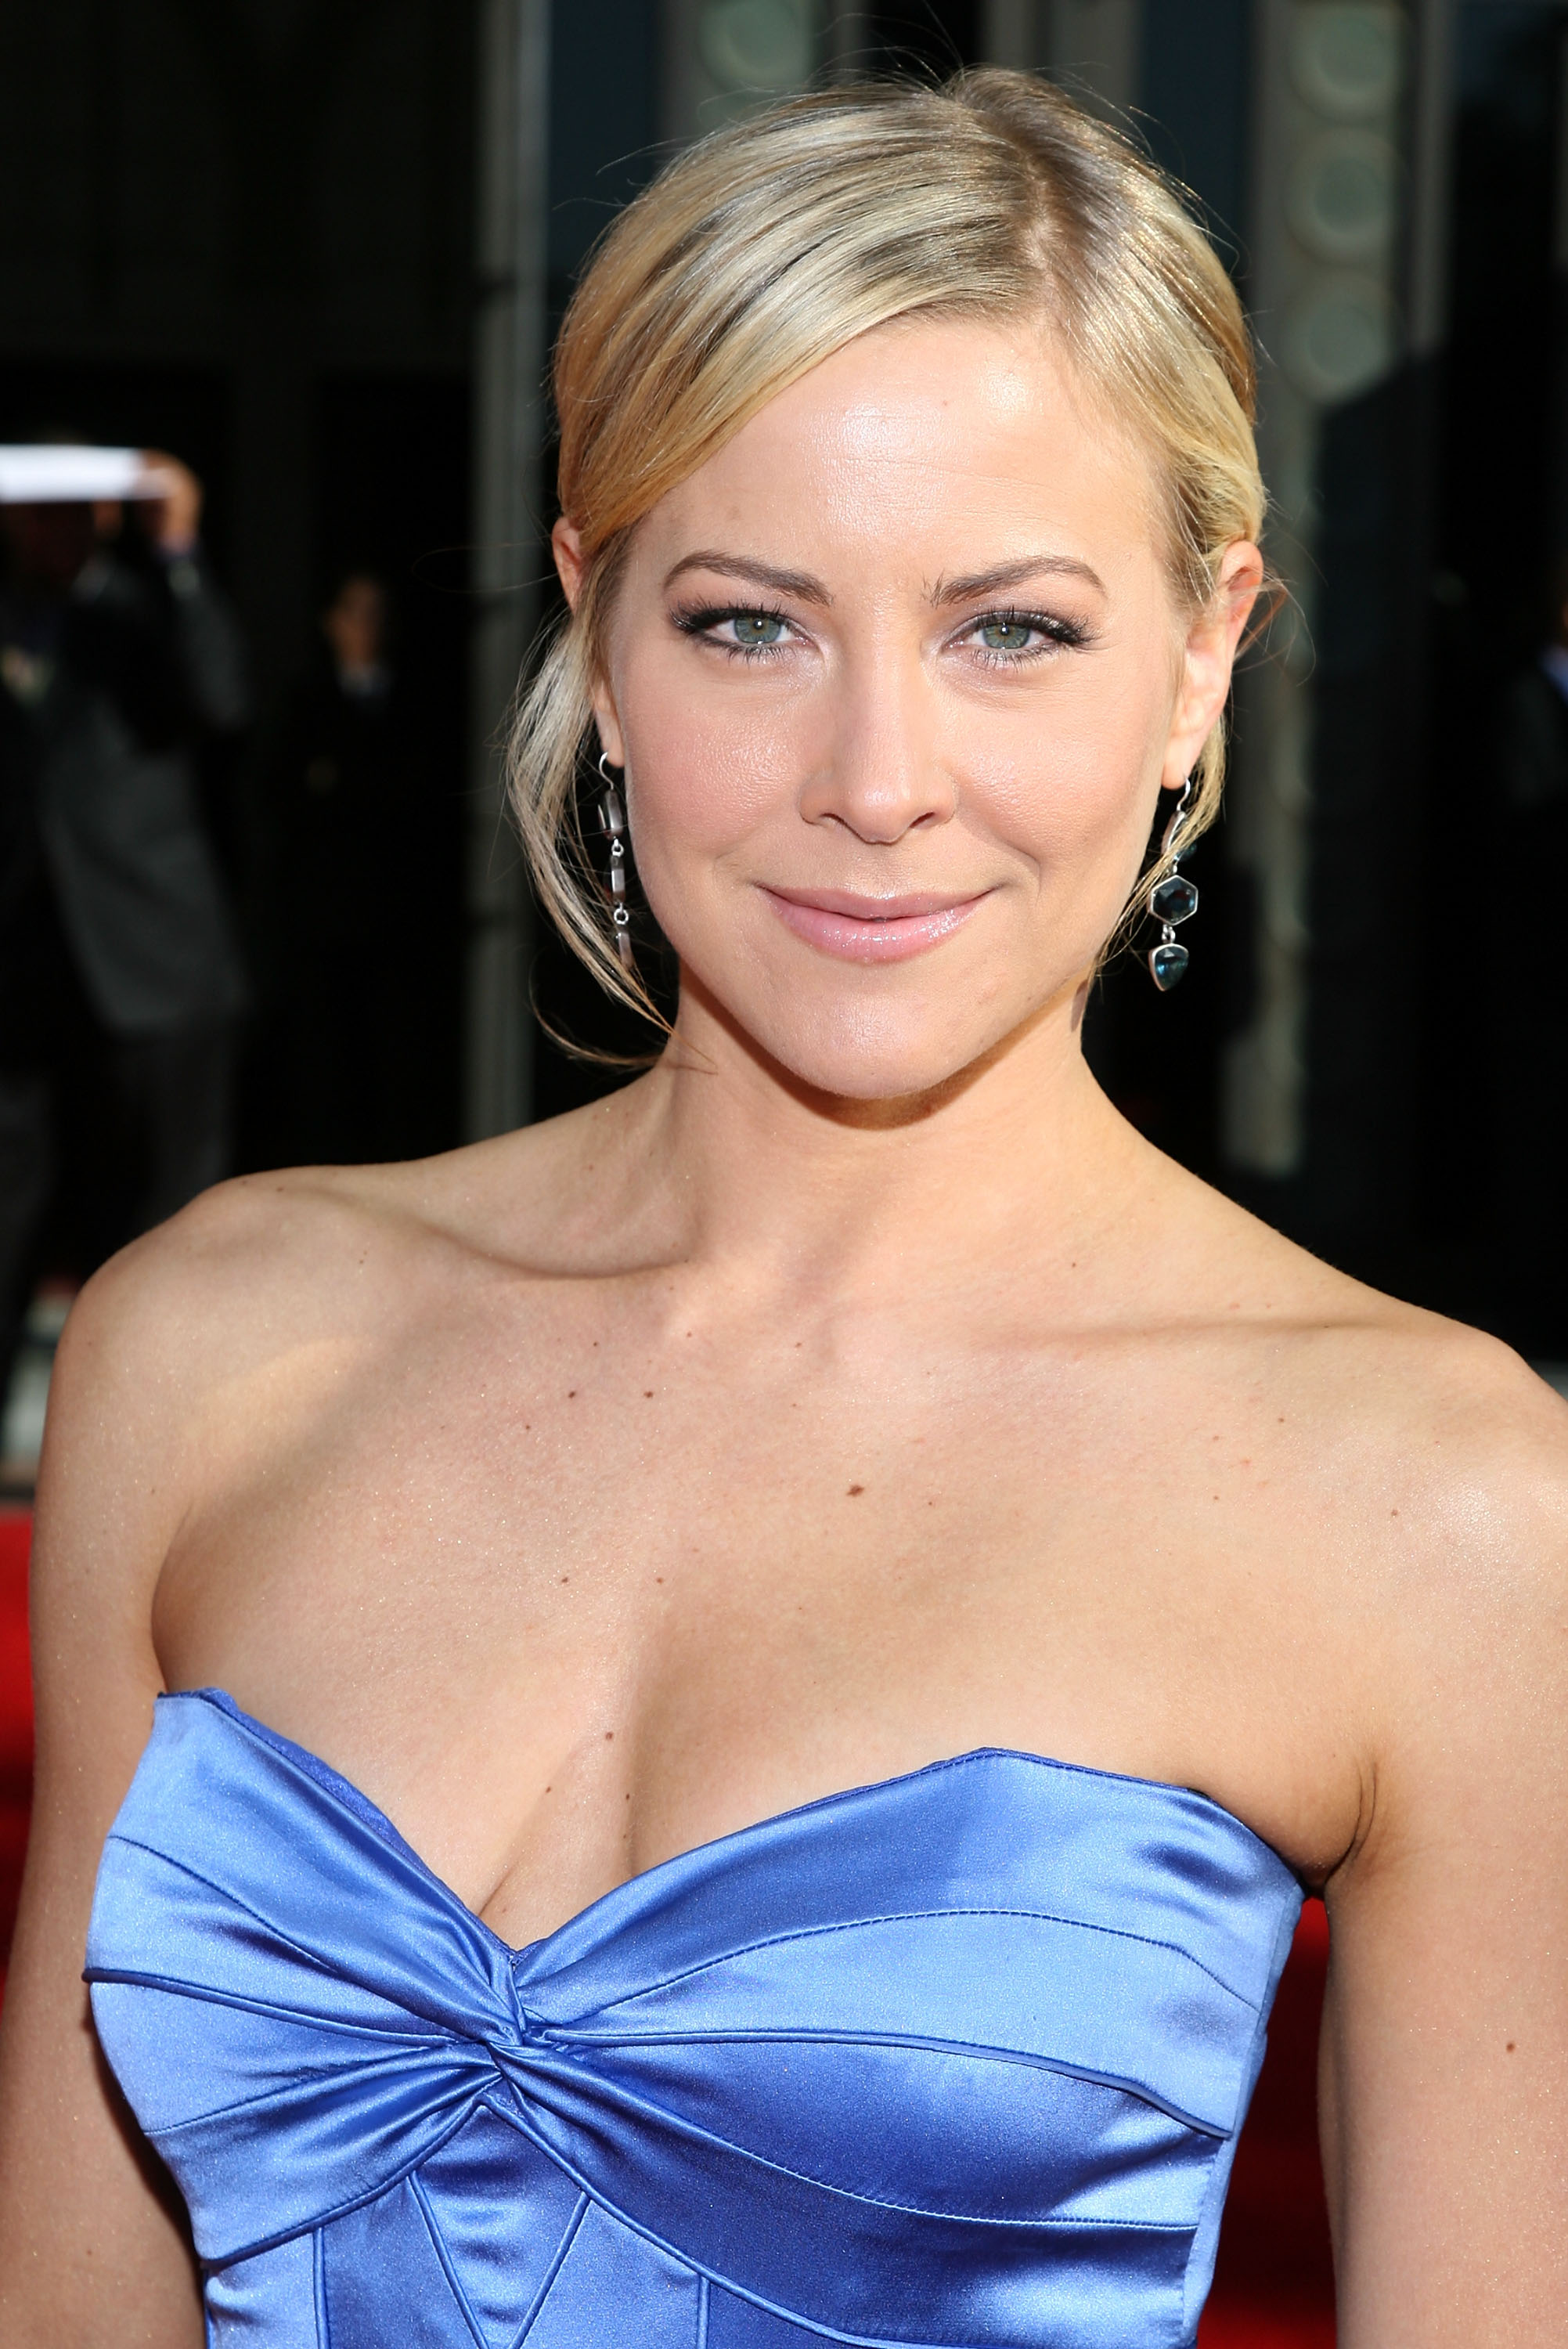 Brittany daniel toes was